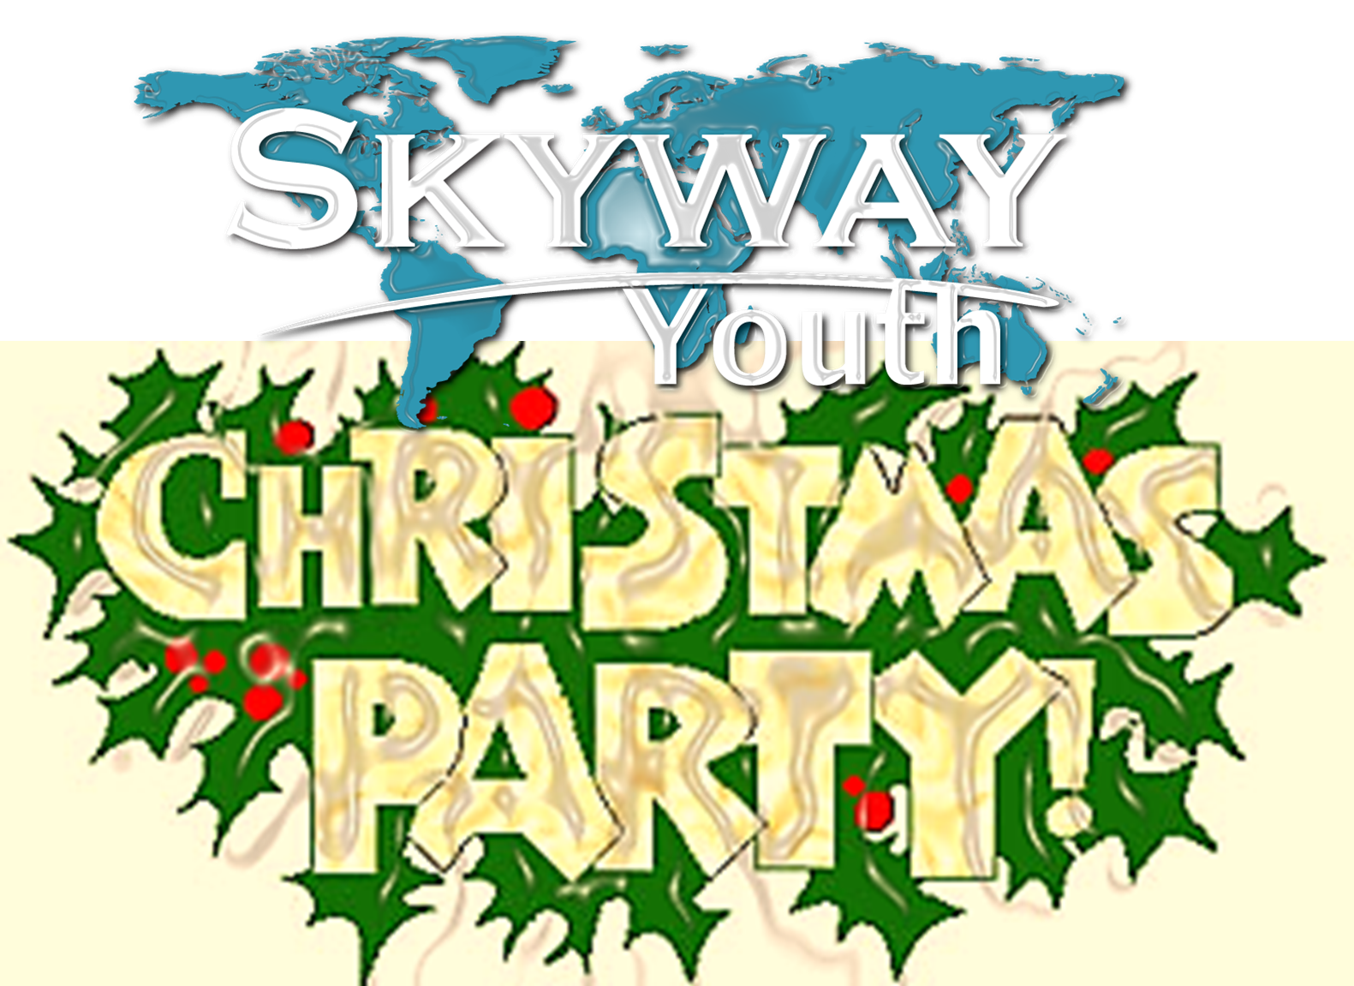 Christmas pajama party clipart vector free download https://skywaychurch.com/?p=28808 2017-03-20T22:15:10Z https ... vector free download